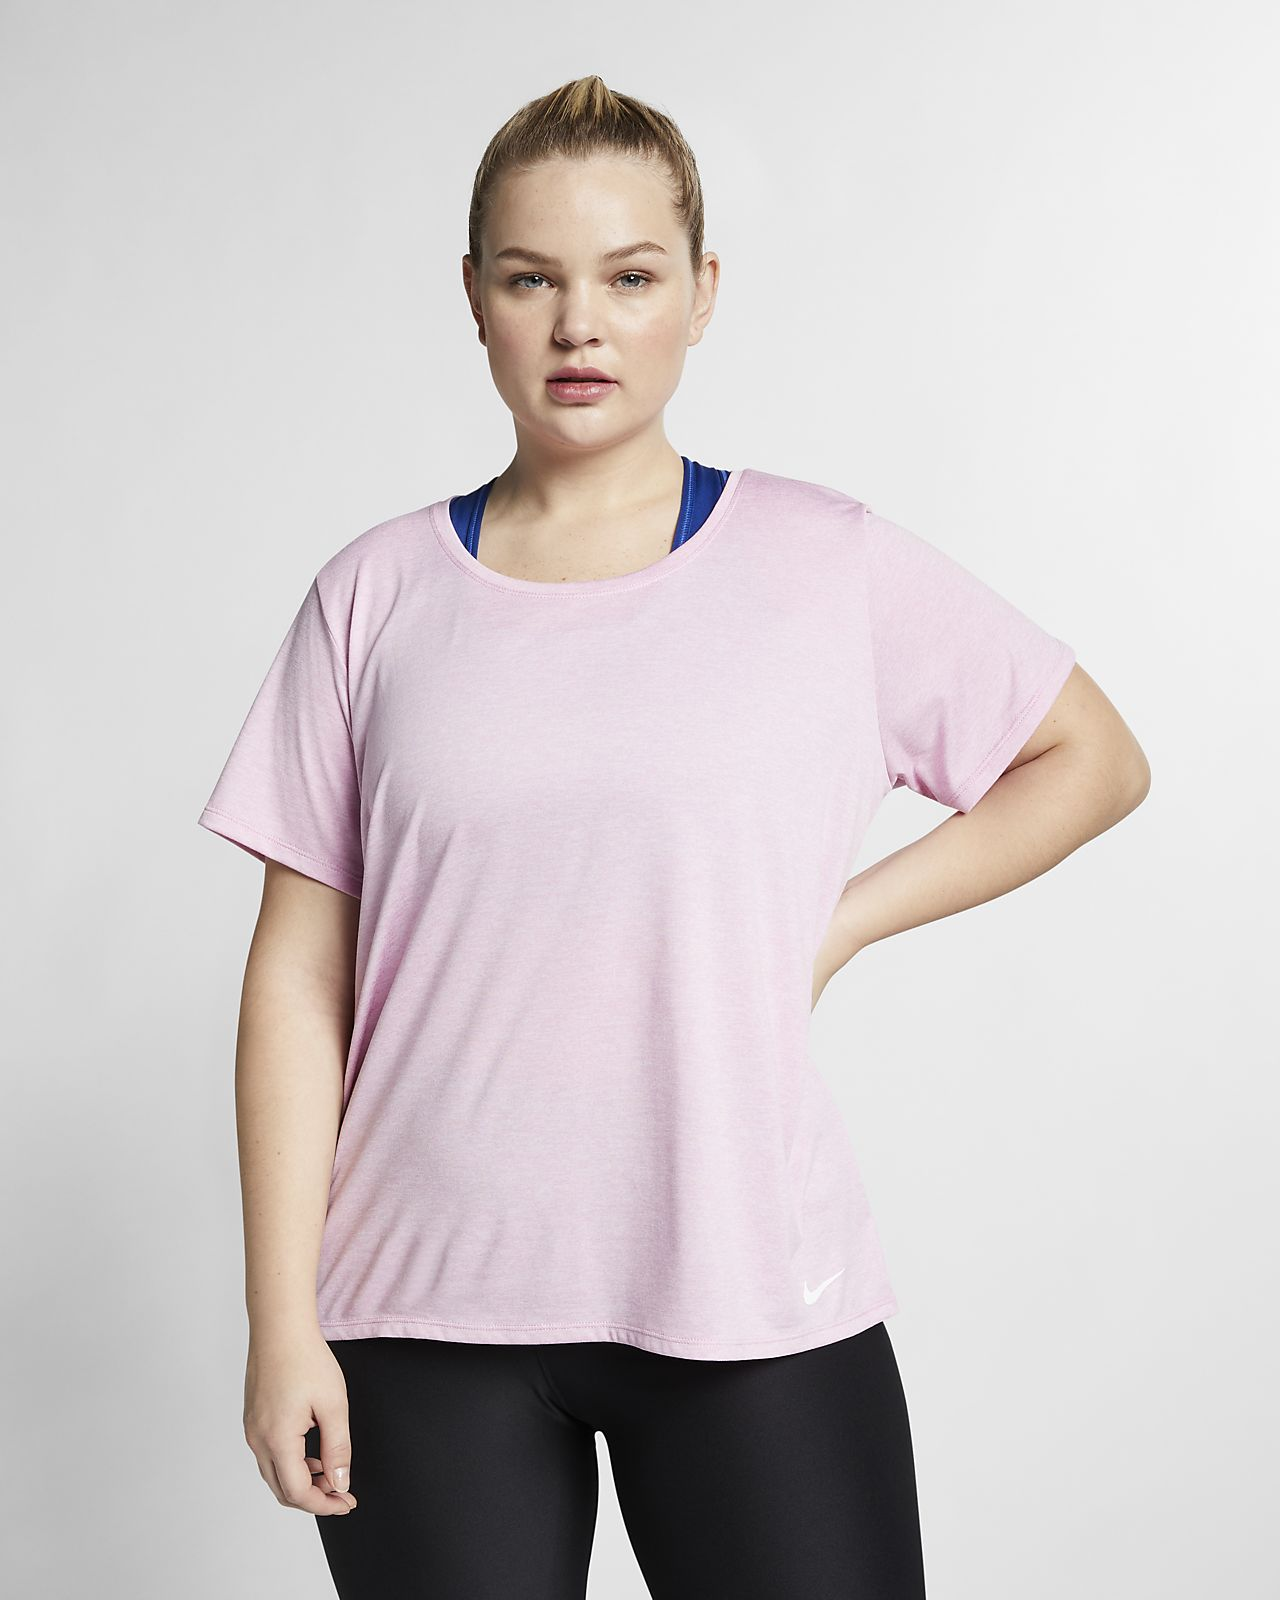 Nike Dri-FIT Legend Women's Short-Sleeve Training Top (Plus Size)